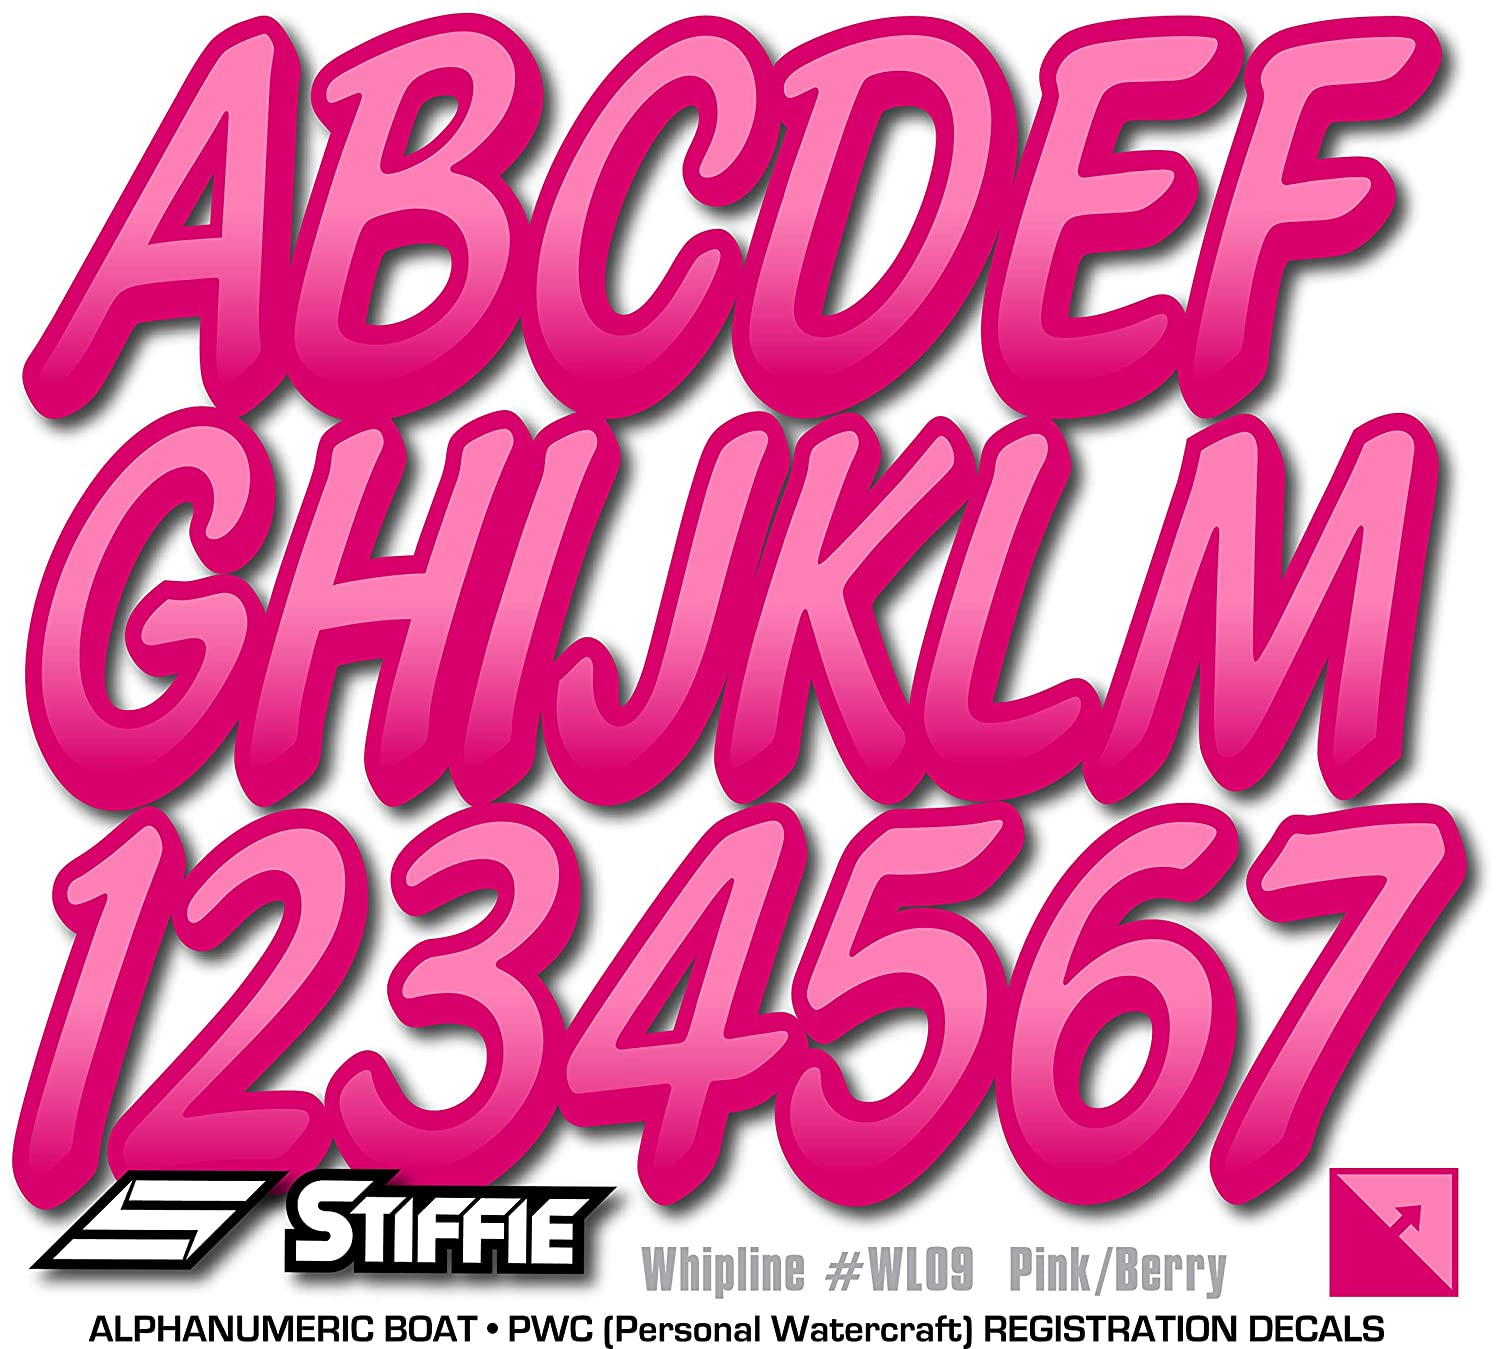 Stiffie Whipline Pink//Berry 3 Alpha-Numeric Registration Identification Numbers Stickers Decals for Boats /& Personal Watercraft .